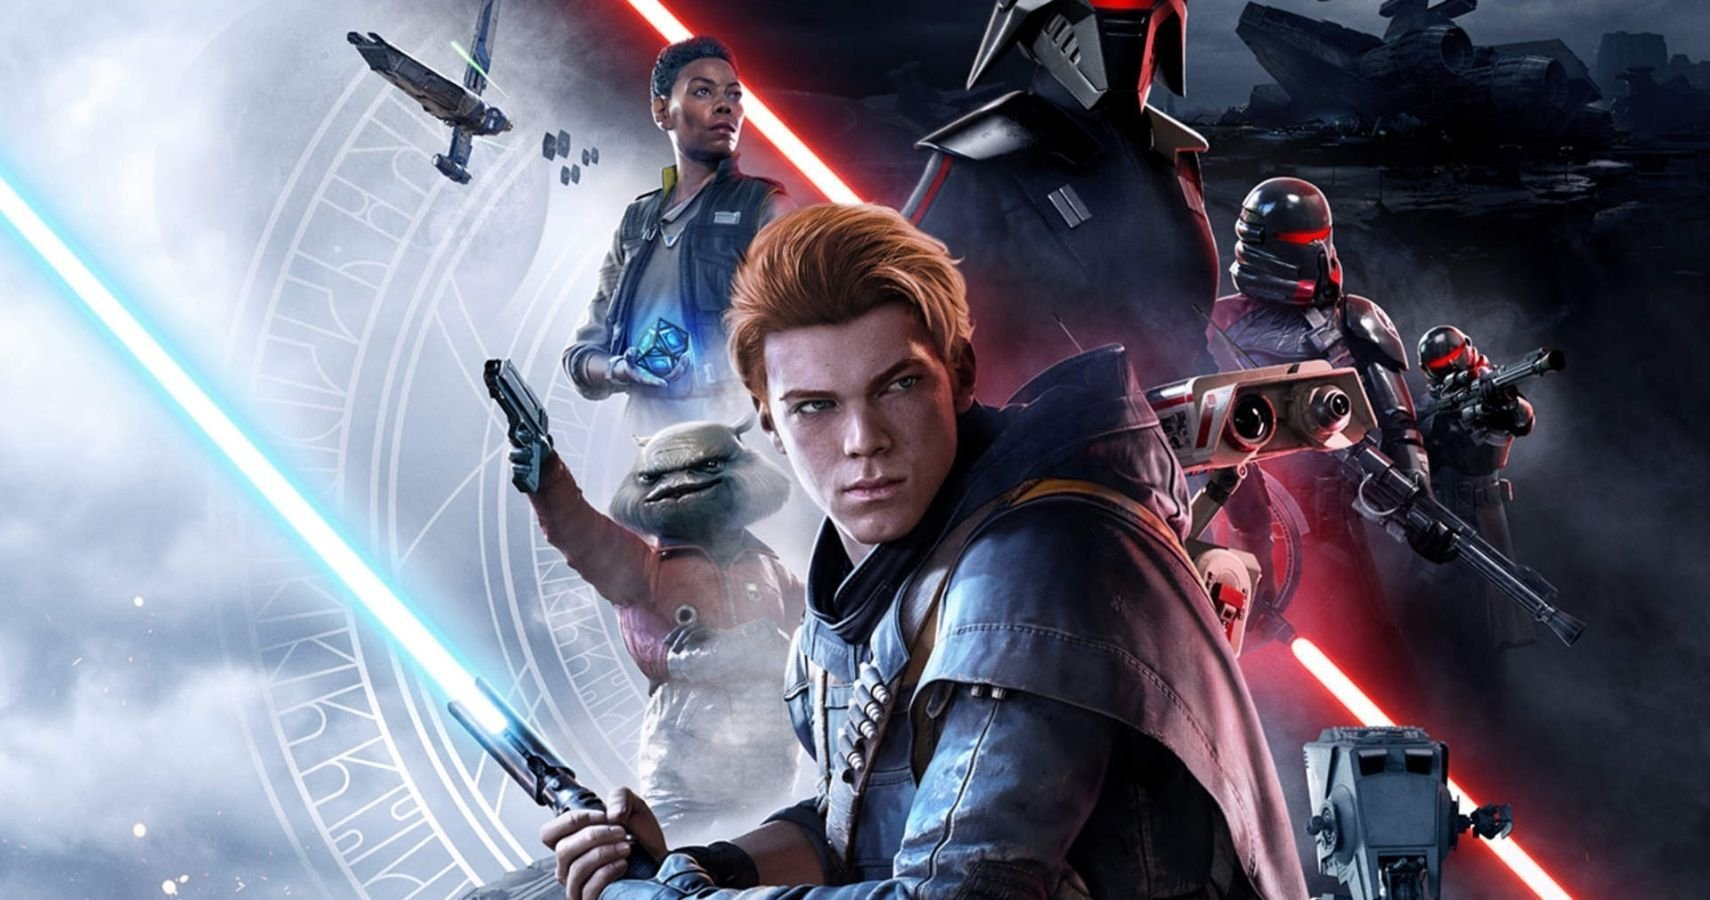 Report: Star Wars Jedi: Fallen Order To Launch On PS5 This Friday